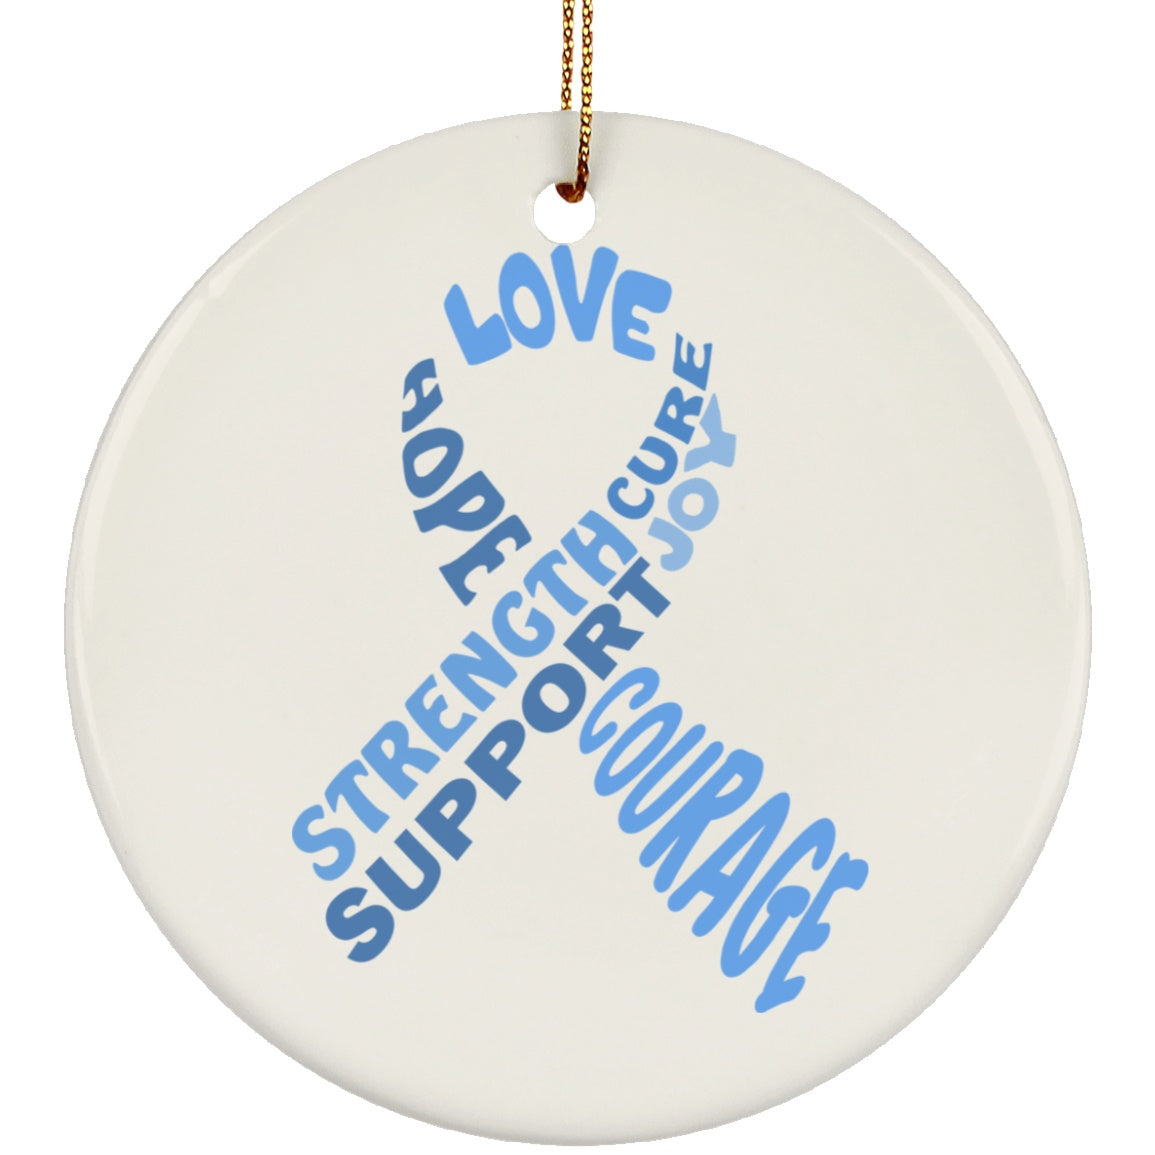 Light Blue Awareness Ribbon With Words Circle Ornament - The Unchargeables